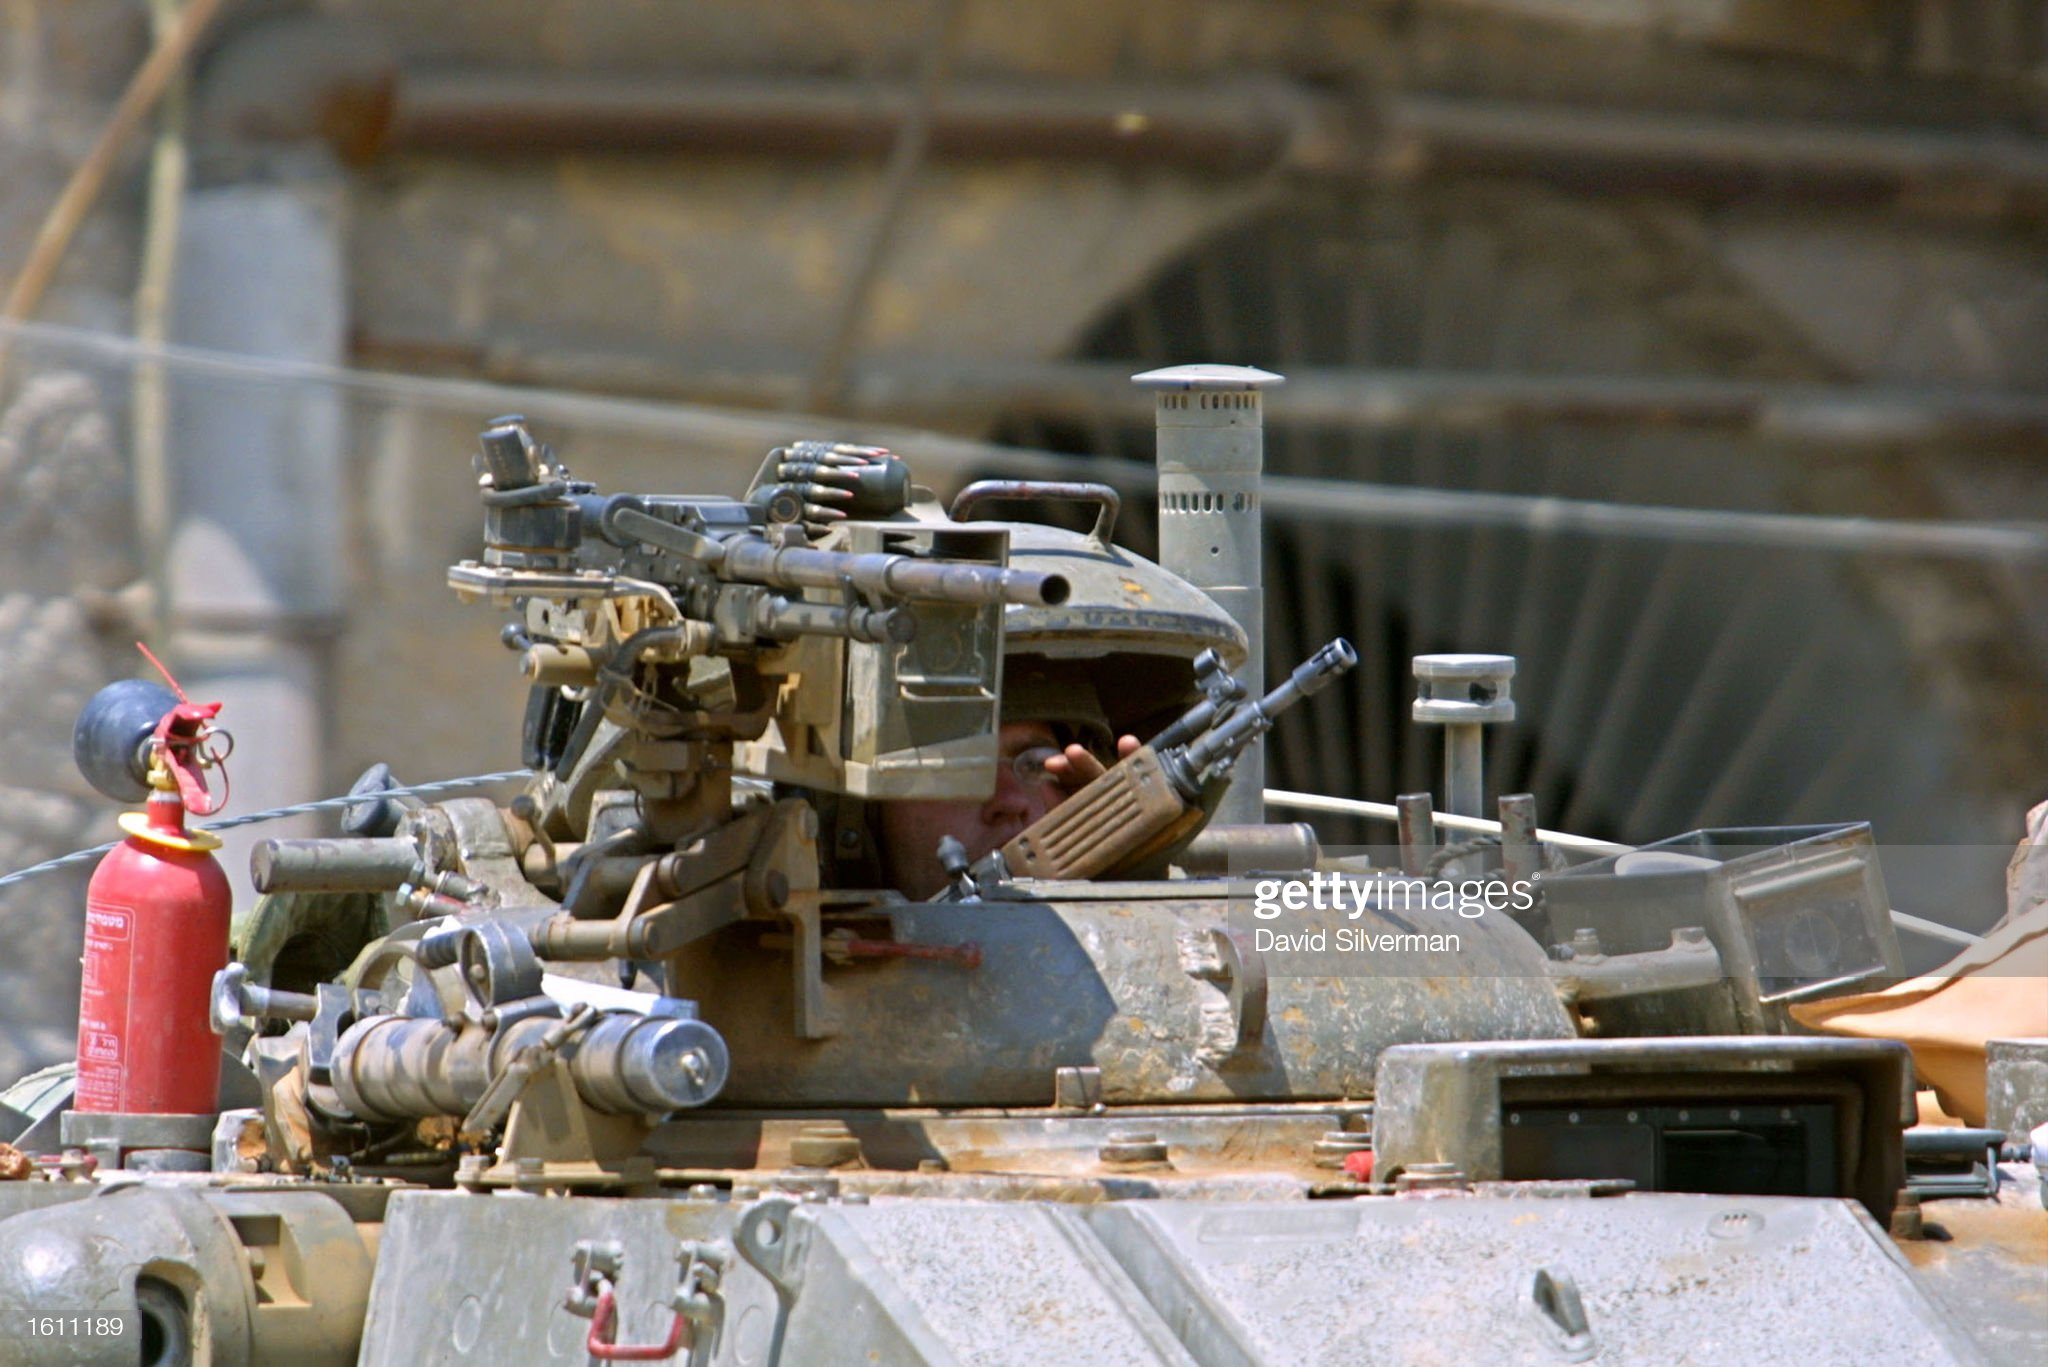 https://media.gettyimages.com/photos/an-israeli-tank-commander-peers-out-his-turret-during-an-exchange-of-picture-id1611189?s=2048x2048